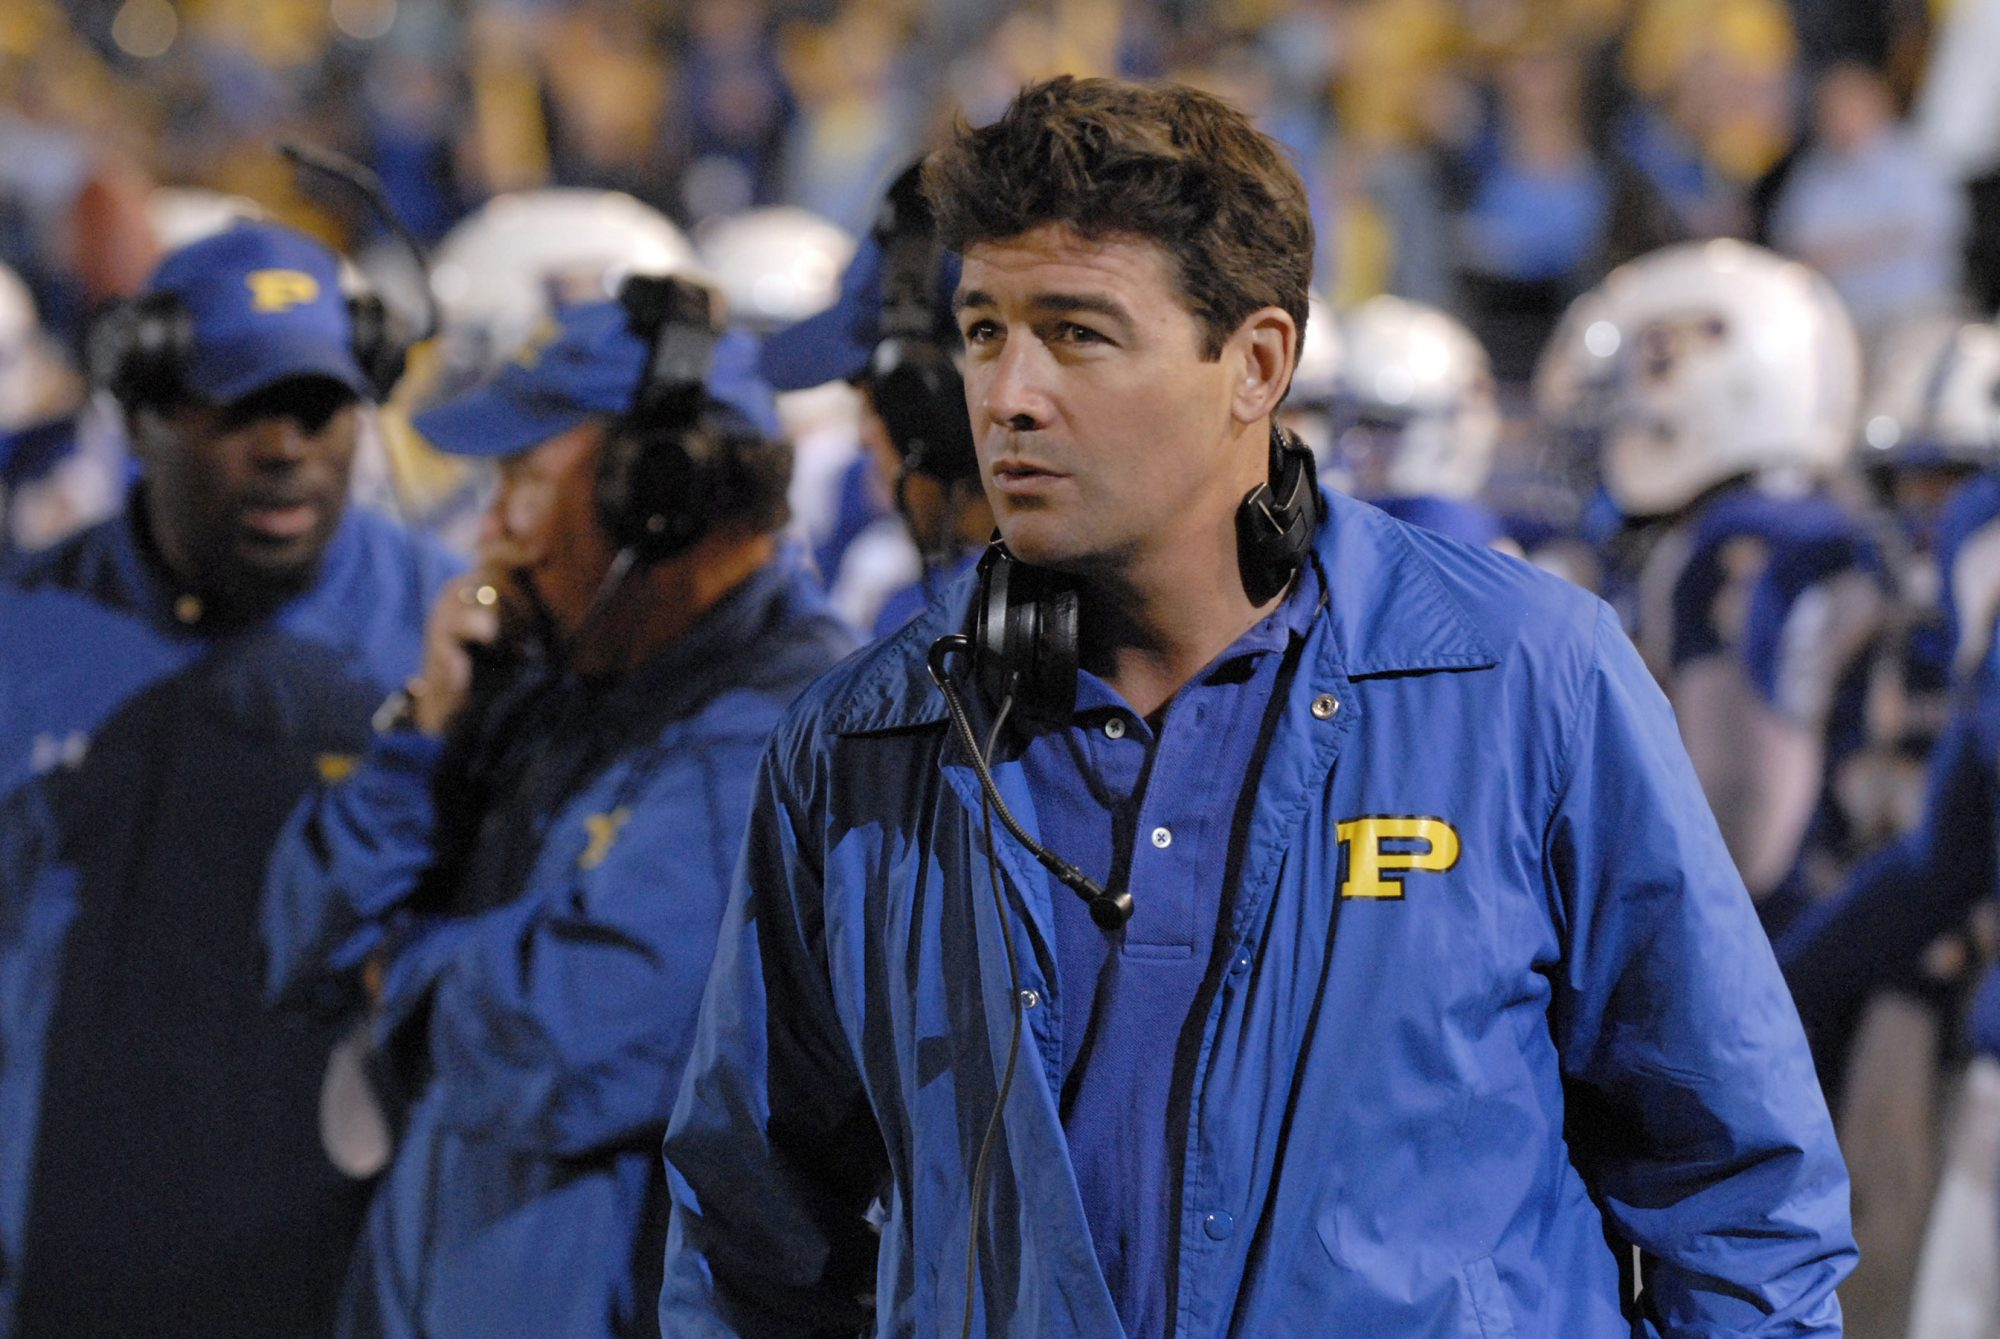 FRIDAY NIGHT LIGHTS, Kyle Chandler, 'Game Of The Week', (Season 3, episode 309, aired Dec. 3, 2008)